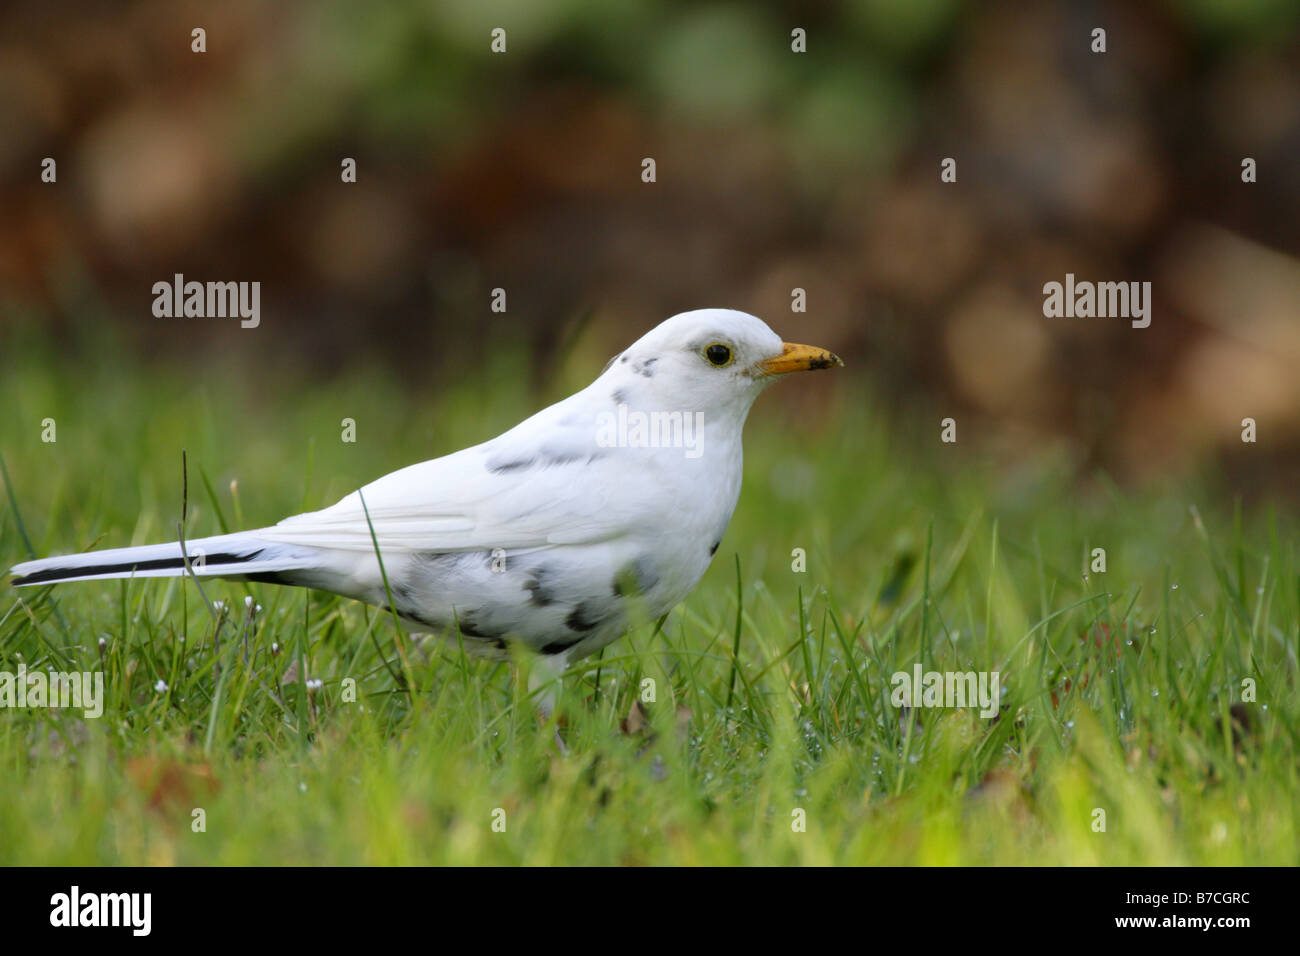 Blackbird Turdus merula single adult male with predominately white feathers standing on grass Pennington Hampshire - Stock Image